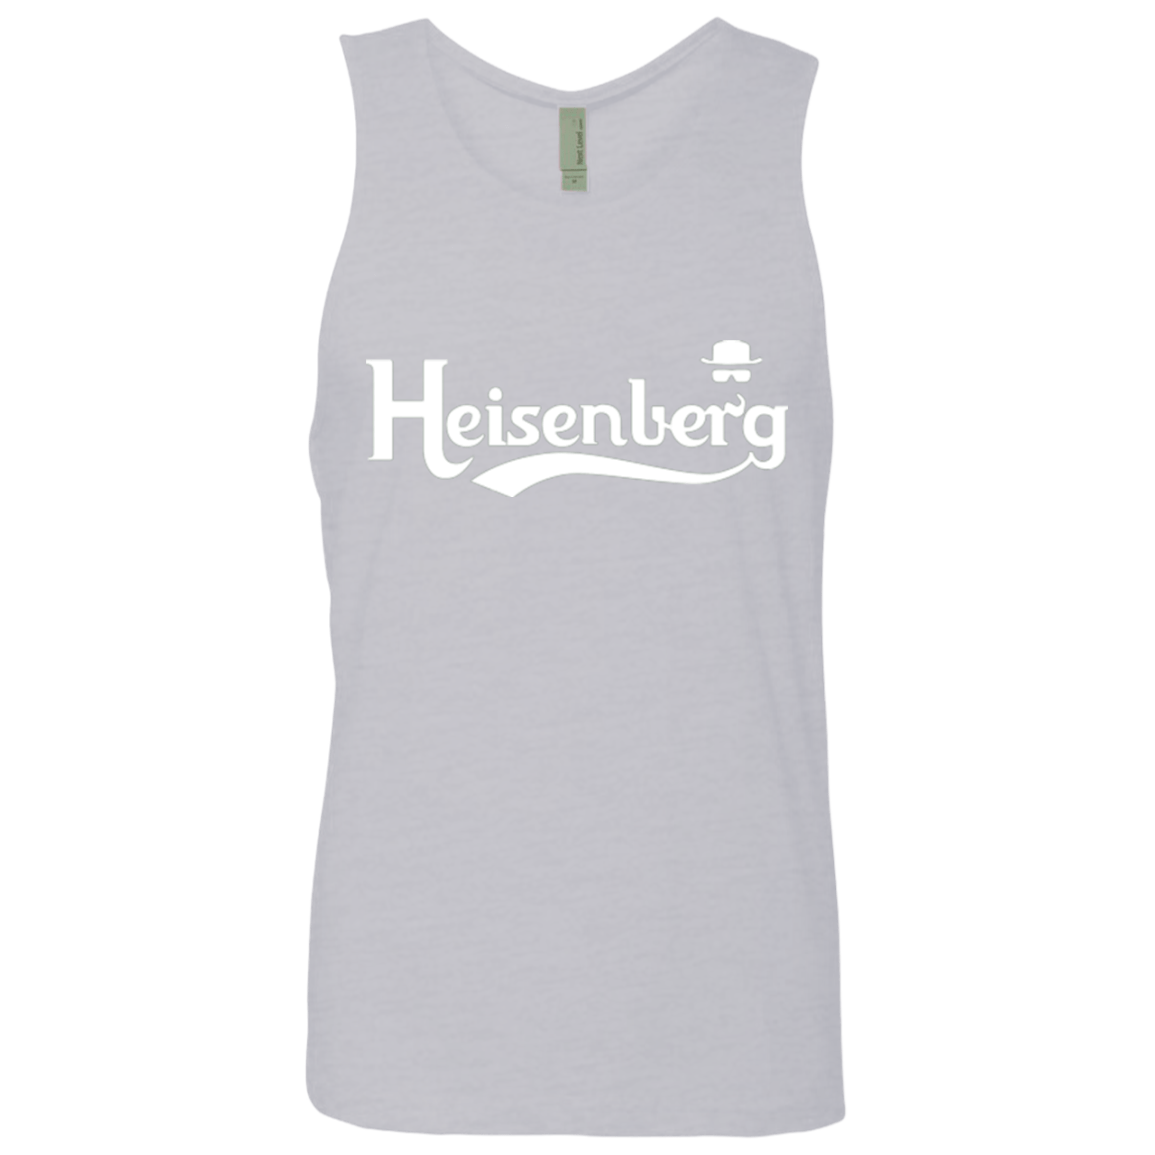 Heisenberg (1) Men's Premium Tank Top